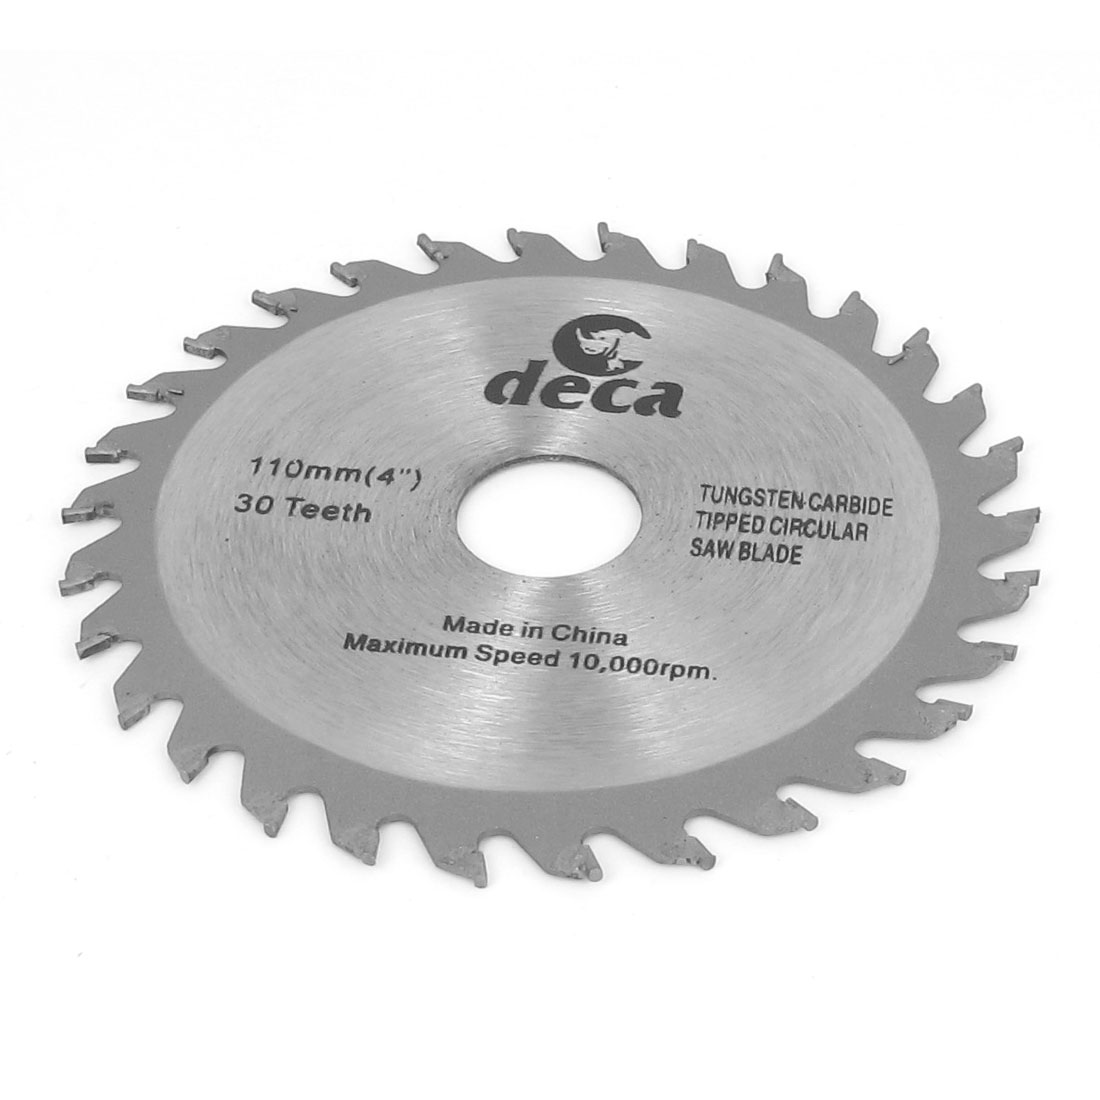 Wood Cutting 110mm Diameter 10000RPM Speed Round Metal 30T Saw Cutter Hand Tool Silver Gray